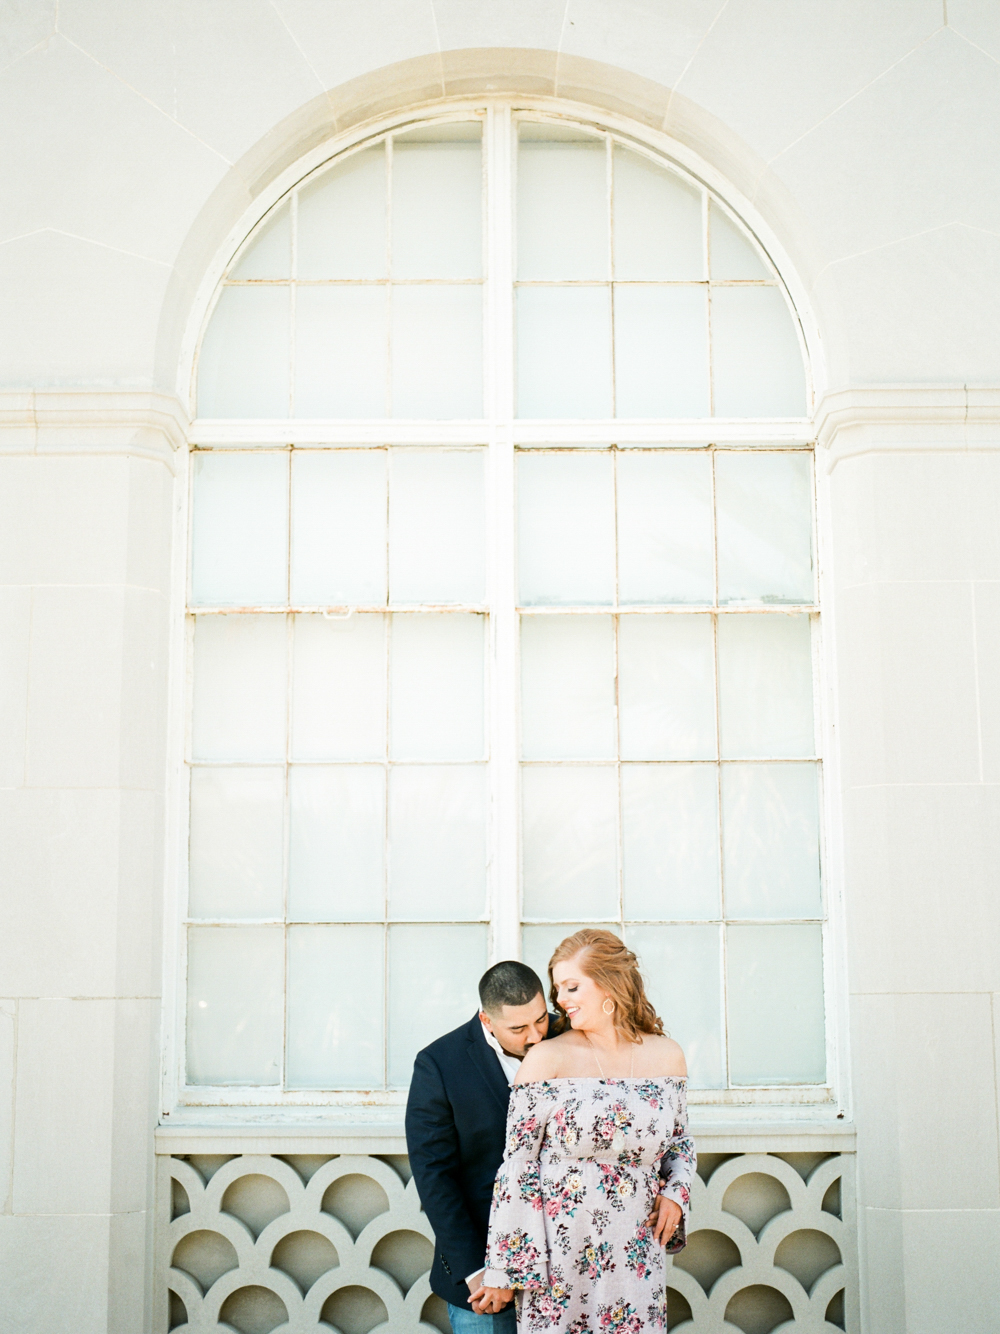 Christine Gosch - destination film photographer - houston wedding photographer - fine art film photographer - elopement photographer - destination wedding - understated wedding - simple beautiful wedding photography-109.jpg